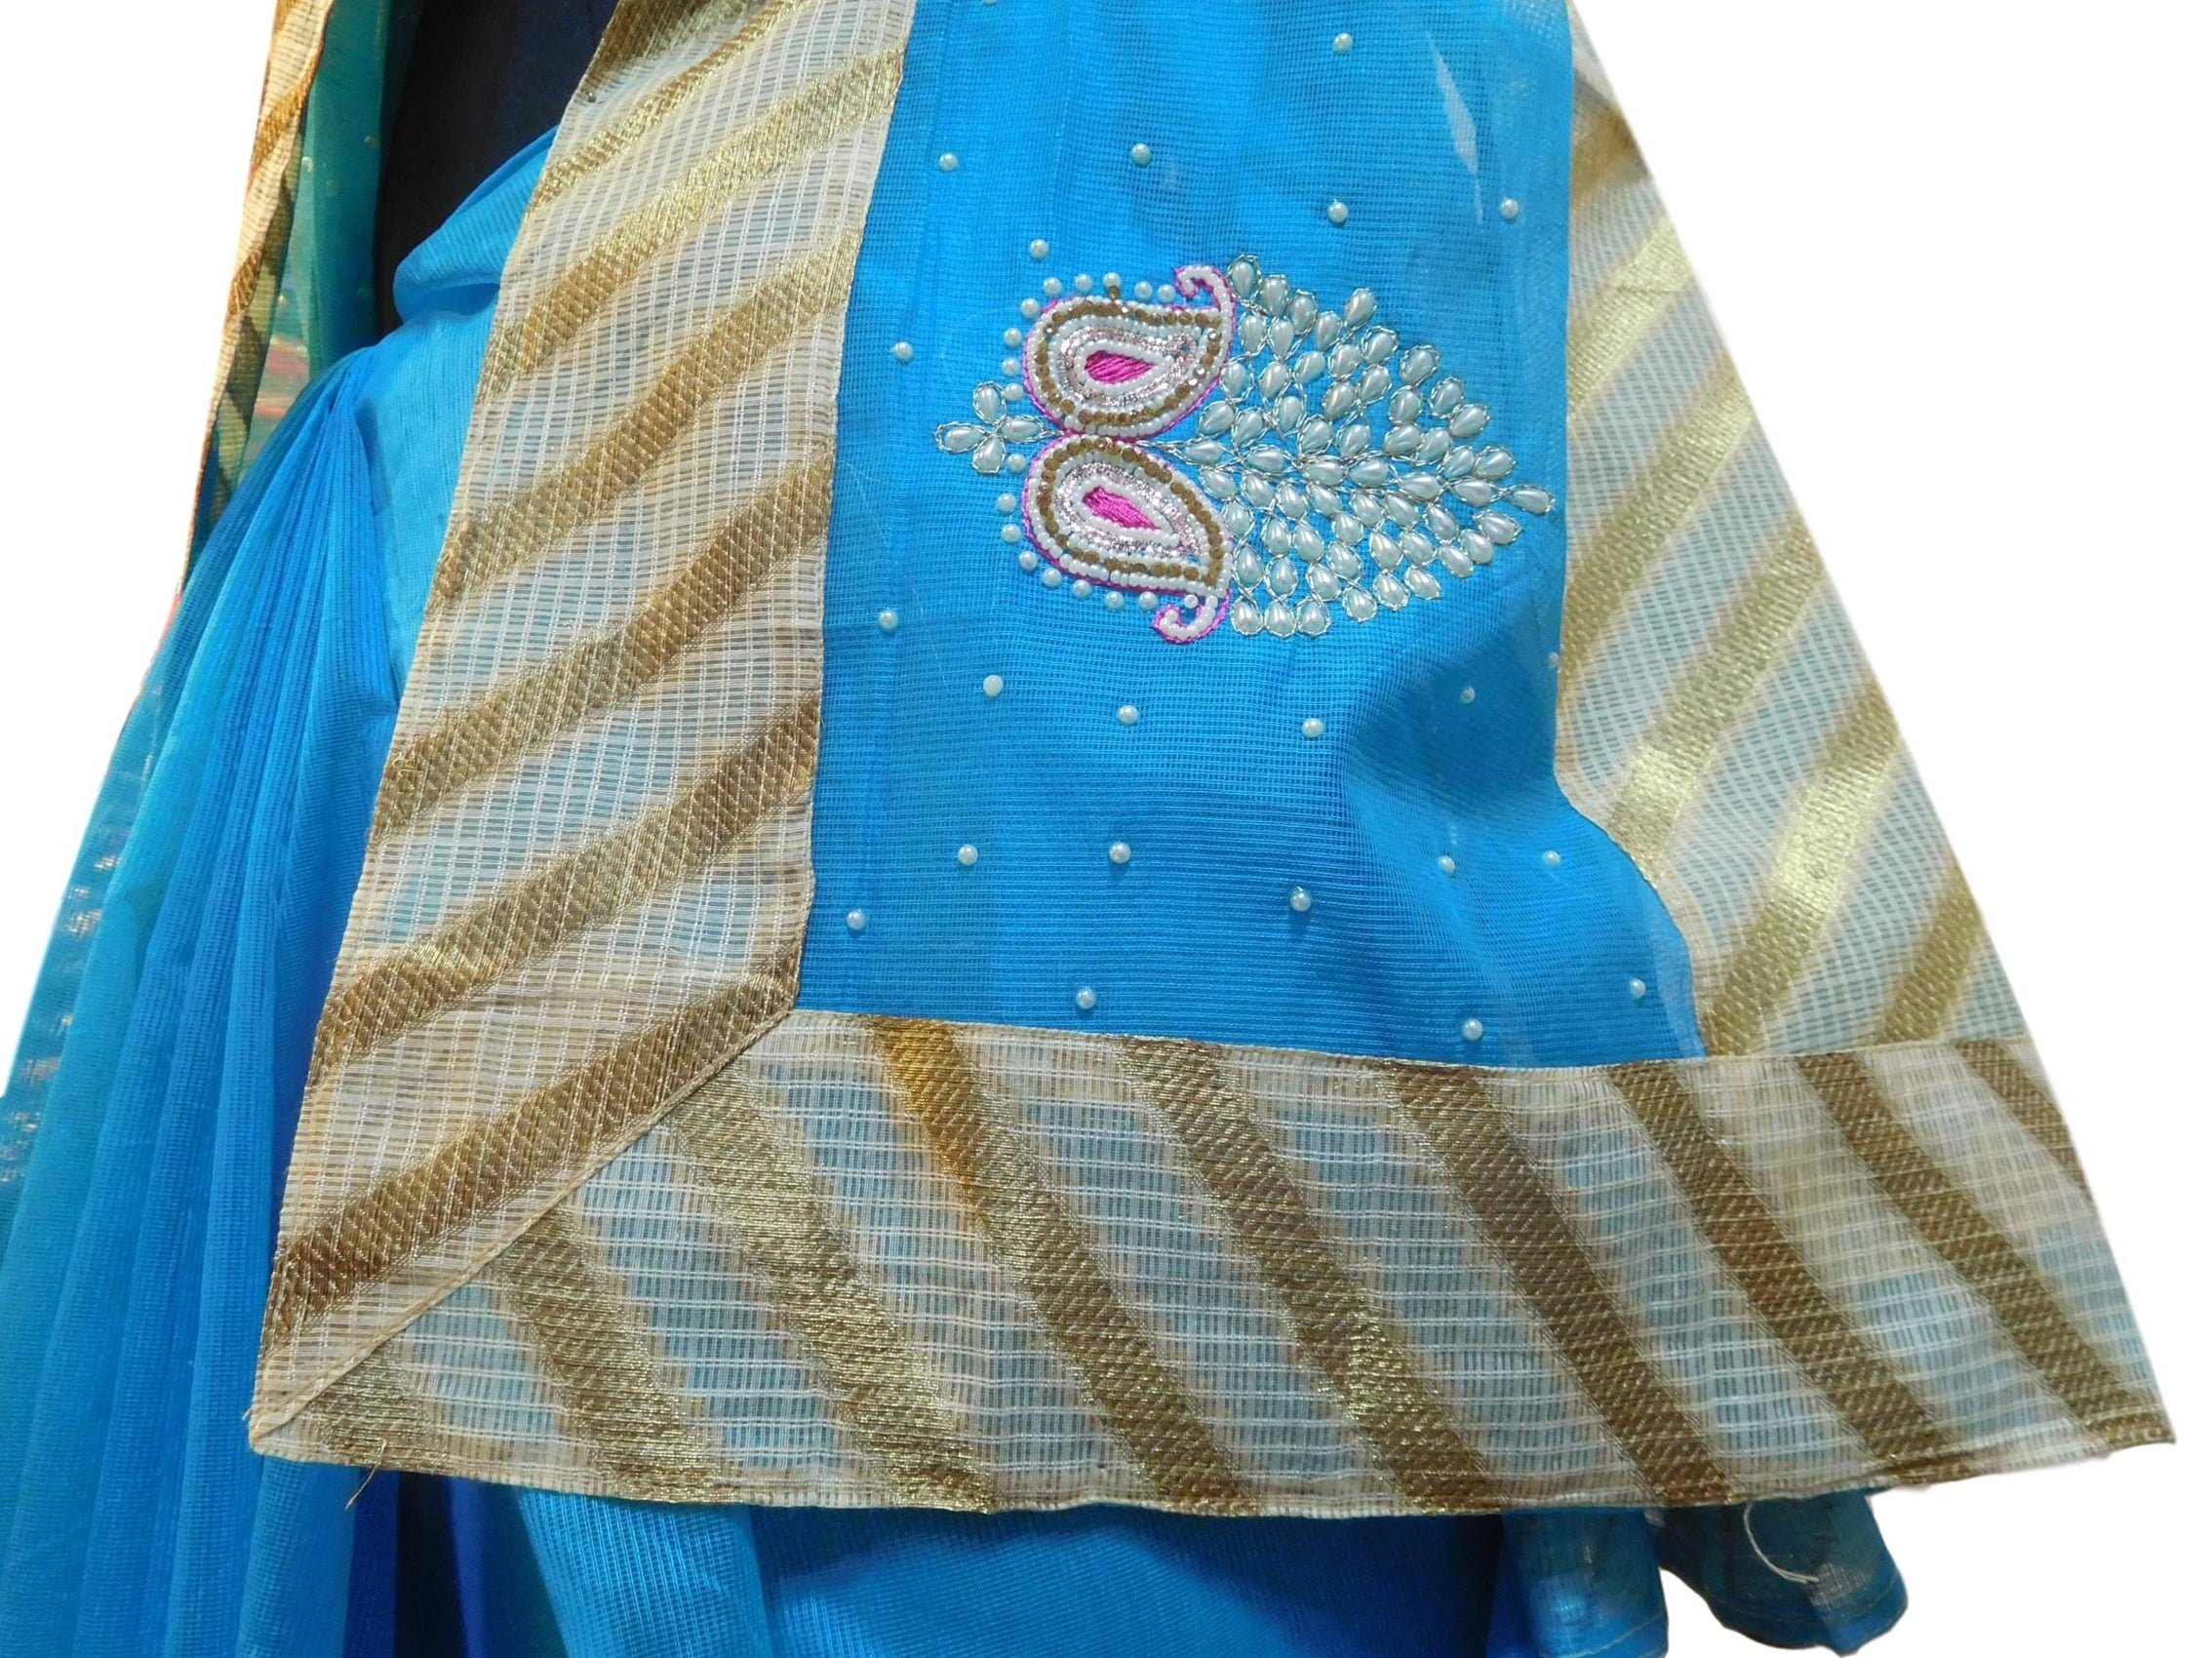 Blue Designer PartyWear Pure Supernet (Cotton) Thread Pearl Stone Work Saree Sari With Golden Border E230